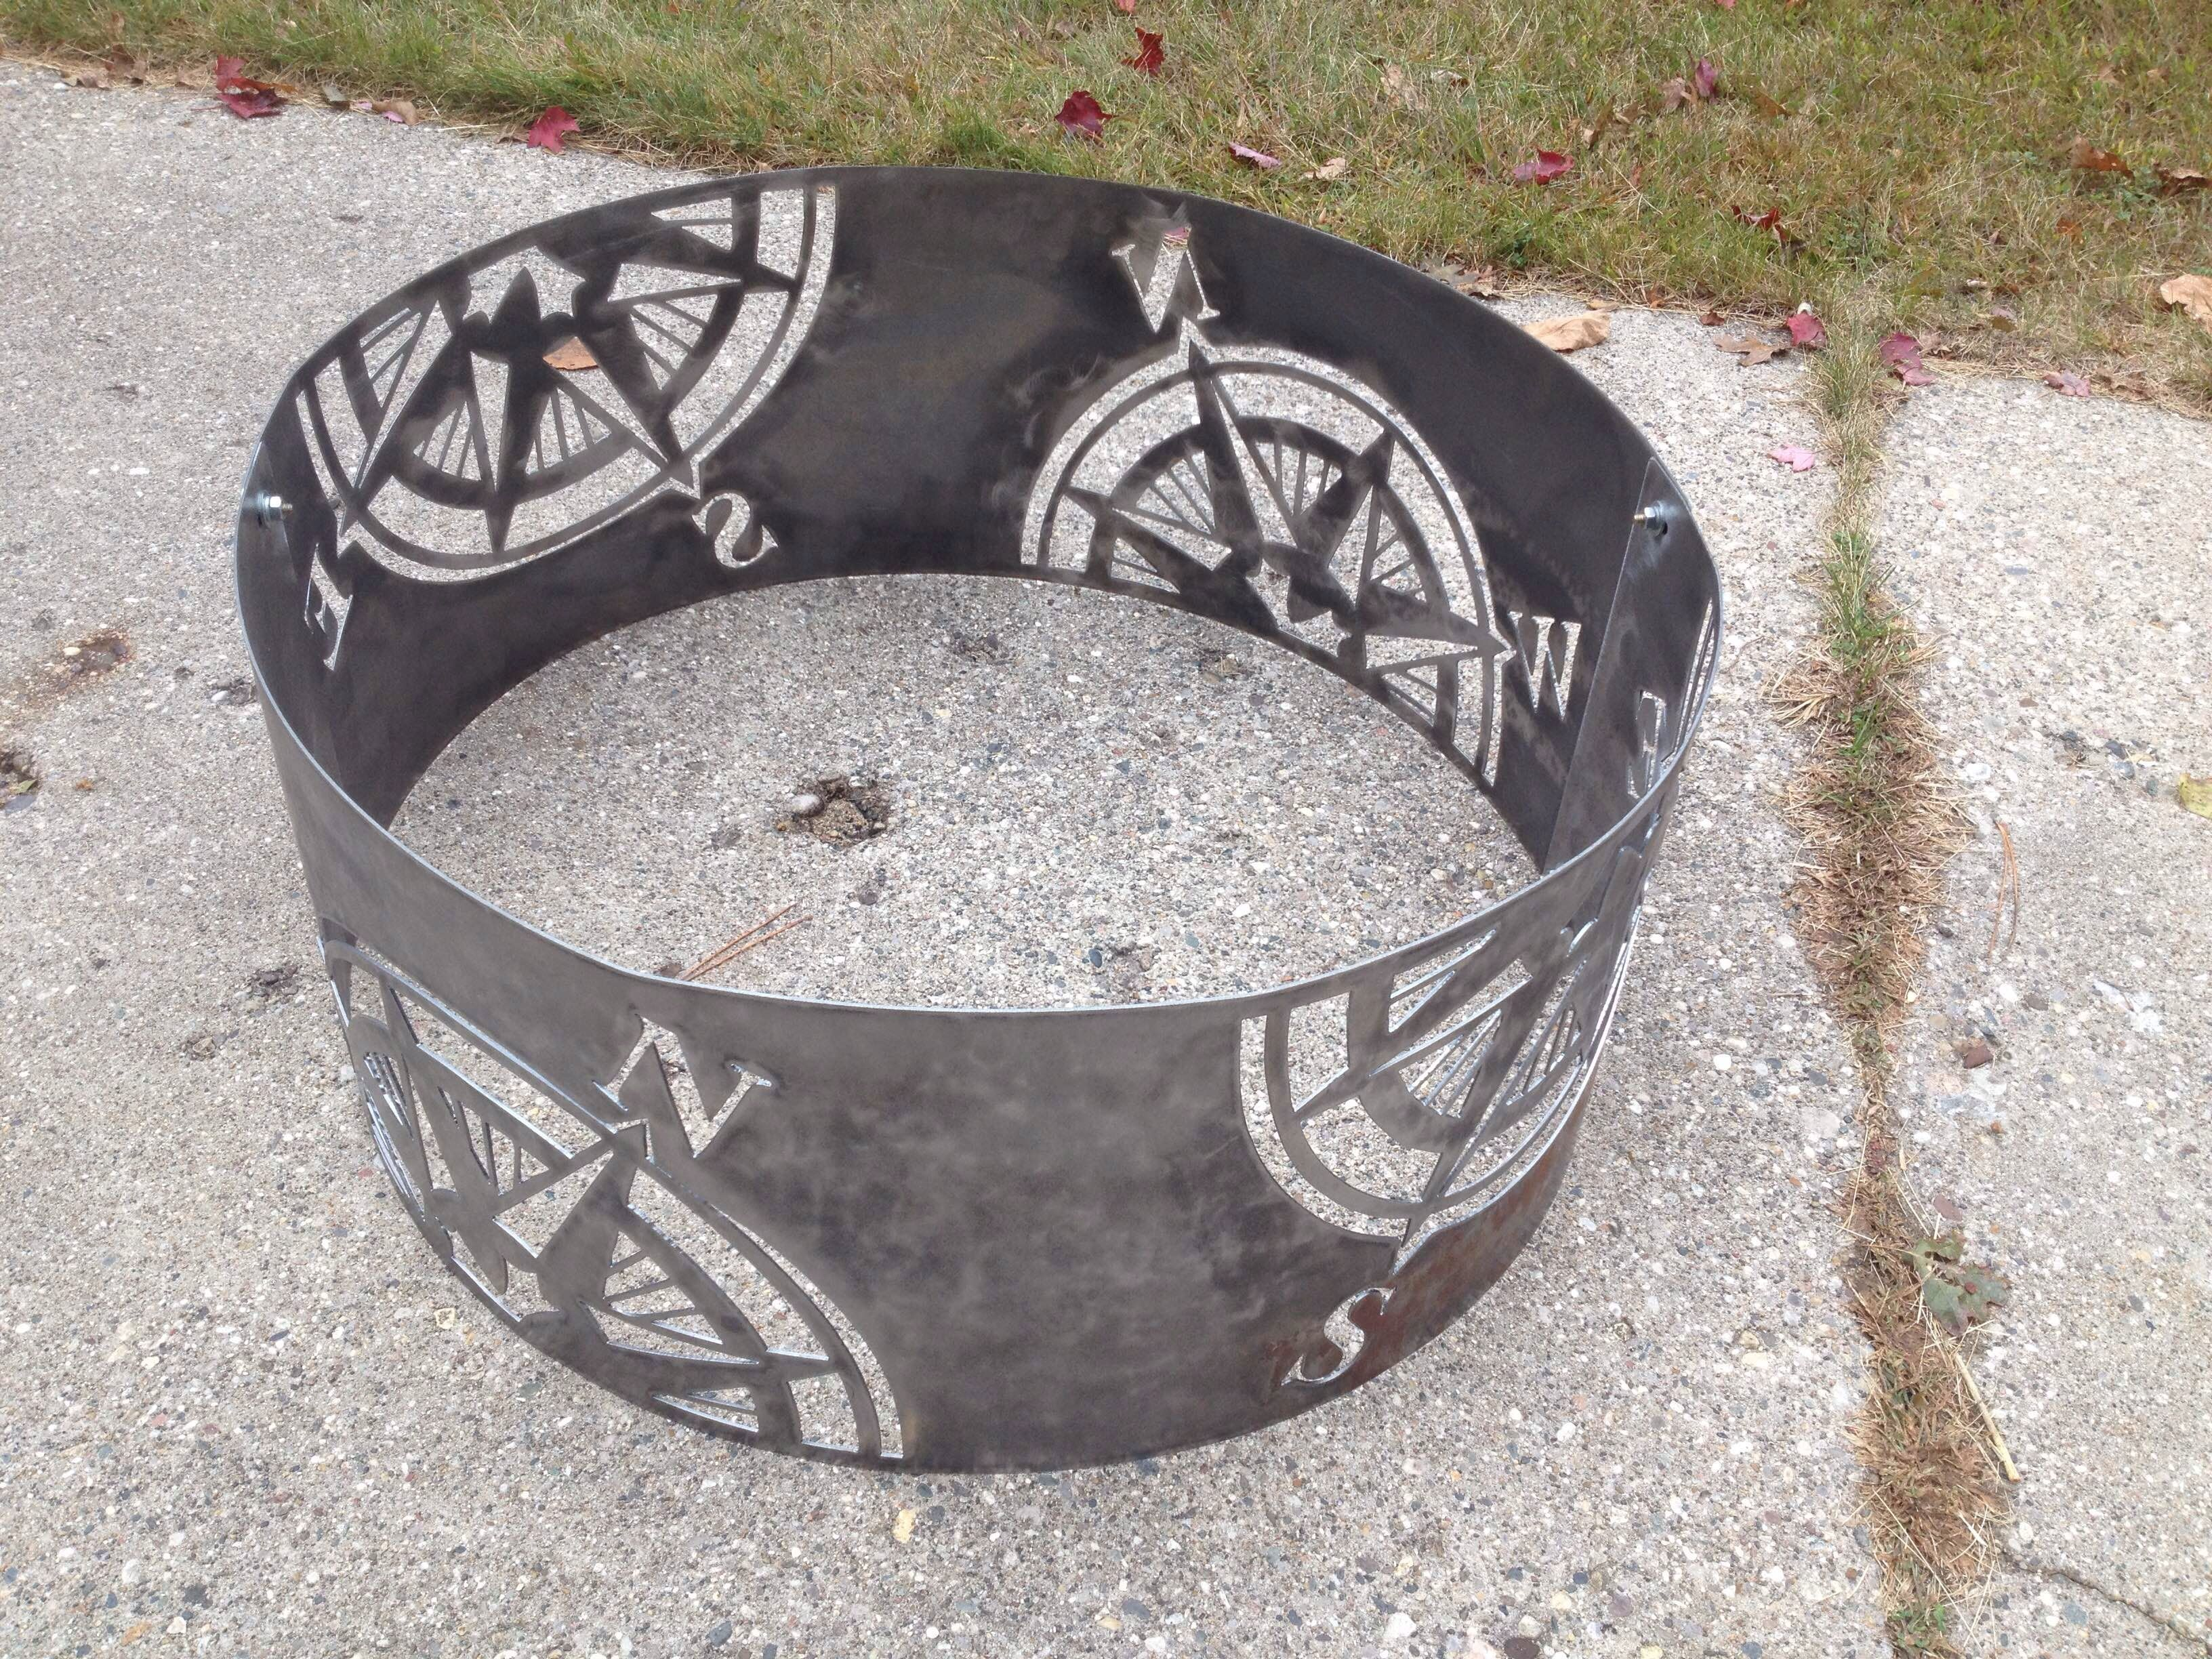 Compass Fire Ring Compass Rose Fire Pit Outdoor Map Etsy Outdoor Fire Pit Fire Pit Backyard Fire Ring